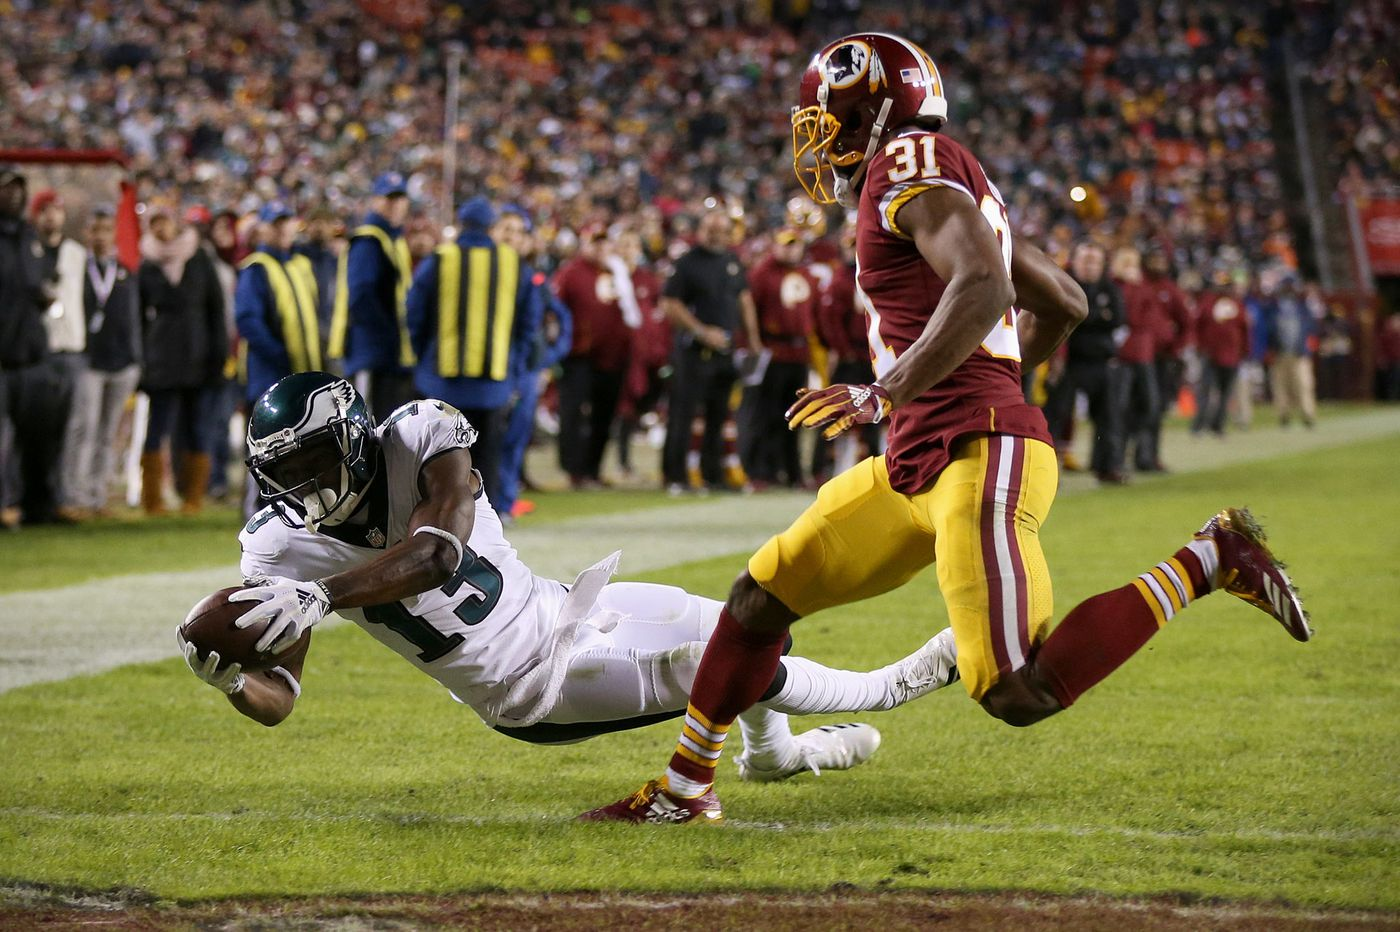 Nelson Agholor was the not-so-unsung hero for Eagles in win over Redskins